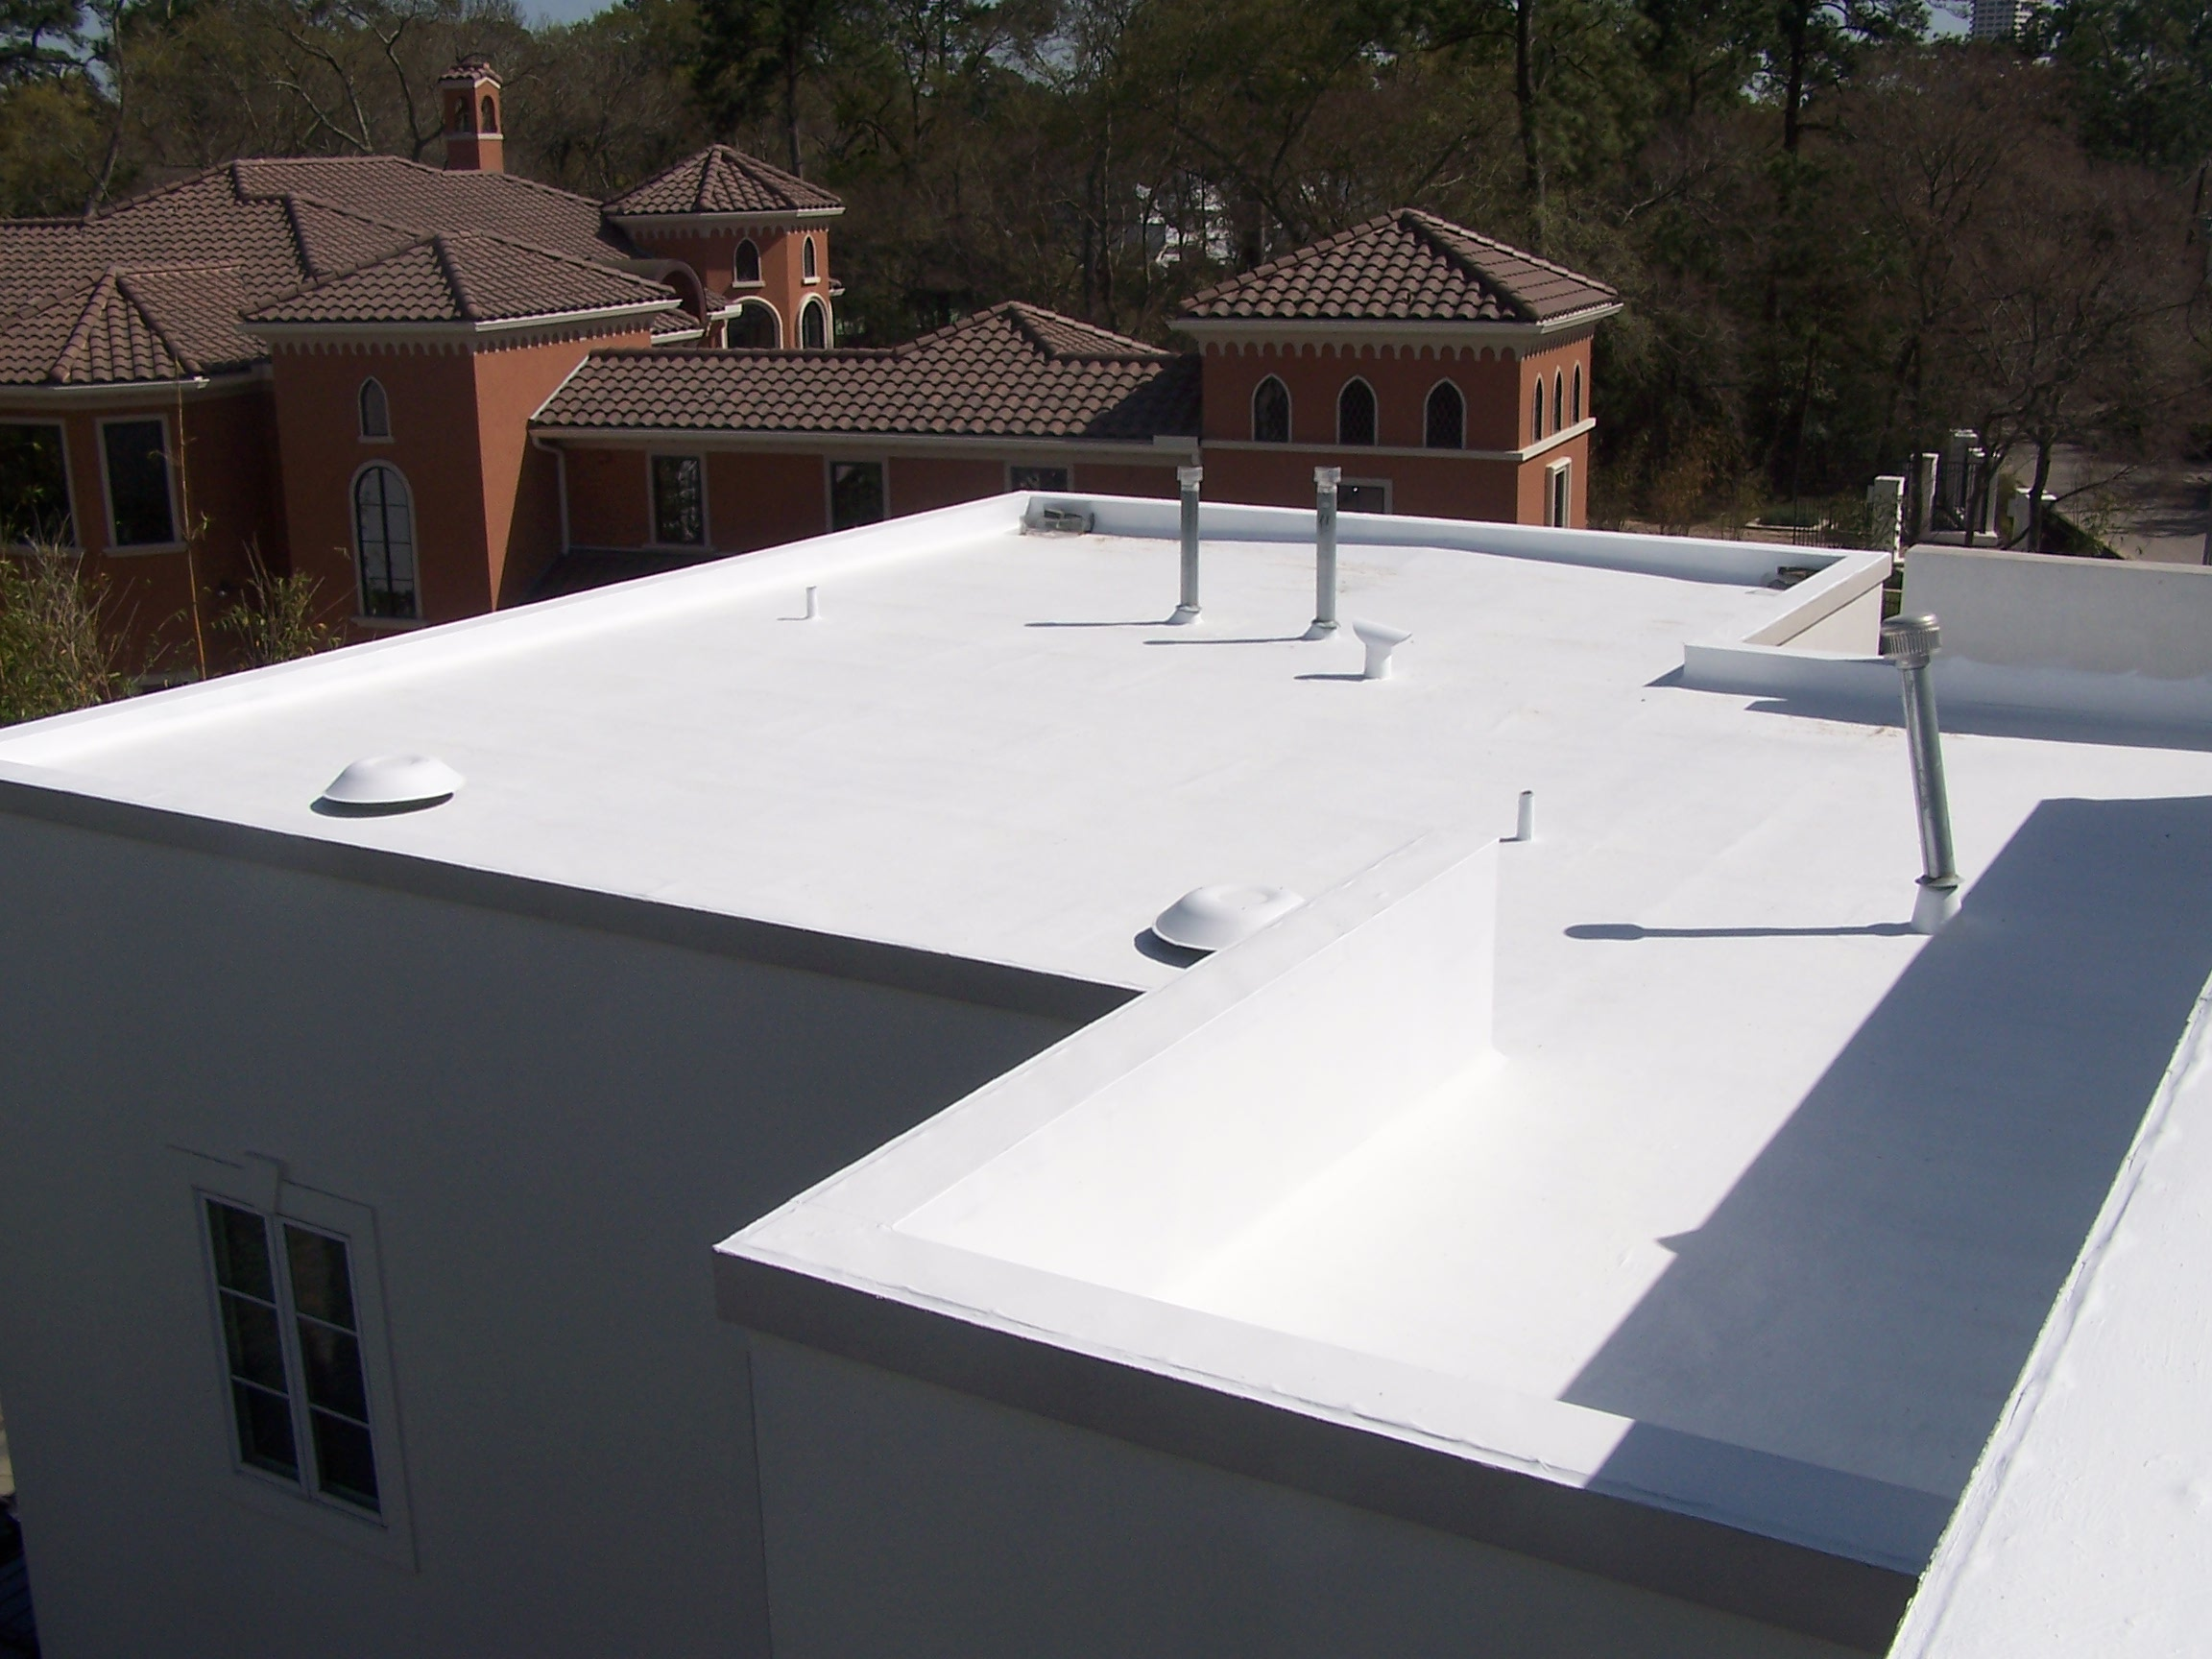 Novatuff Coatings Flexible Epoxy Roof Coating